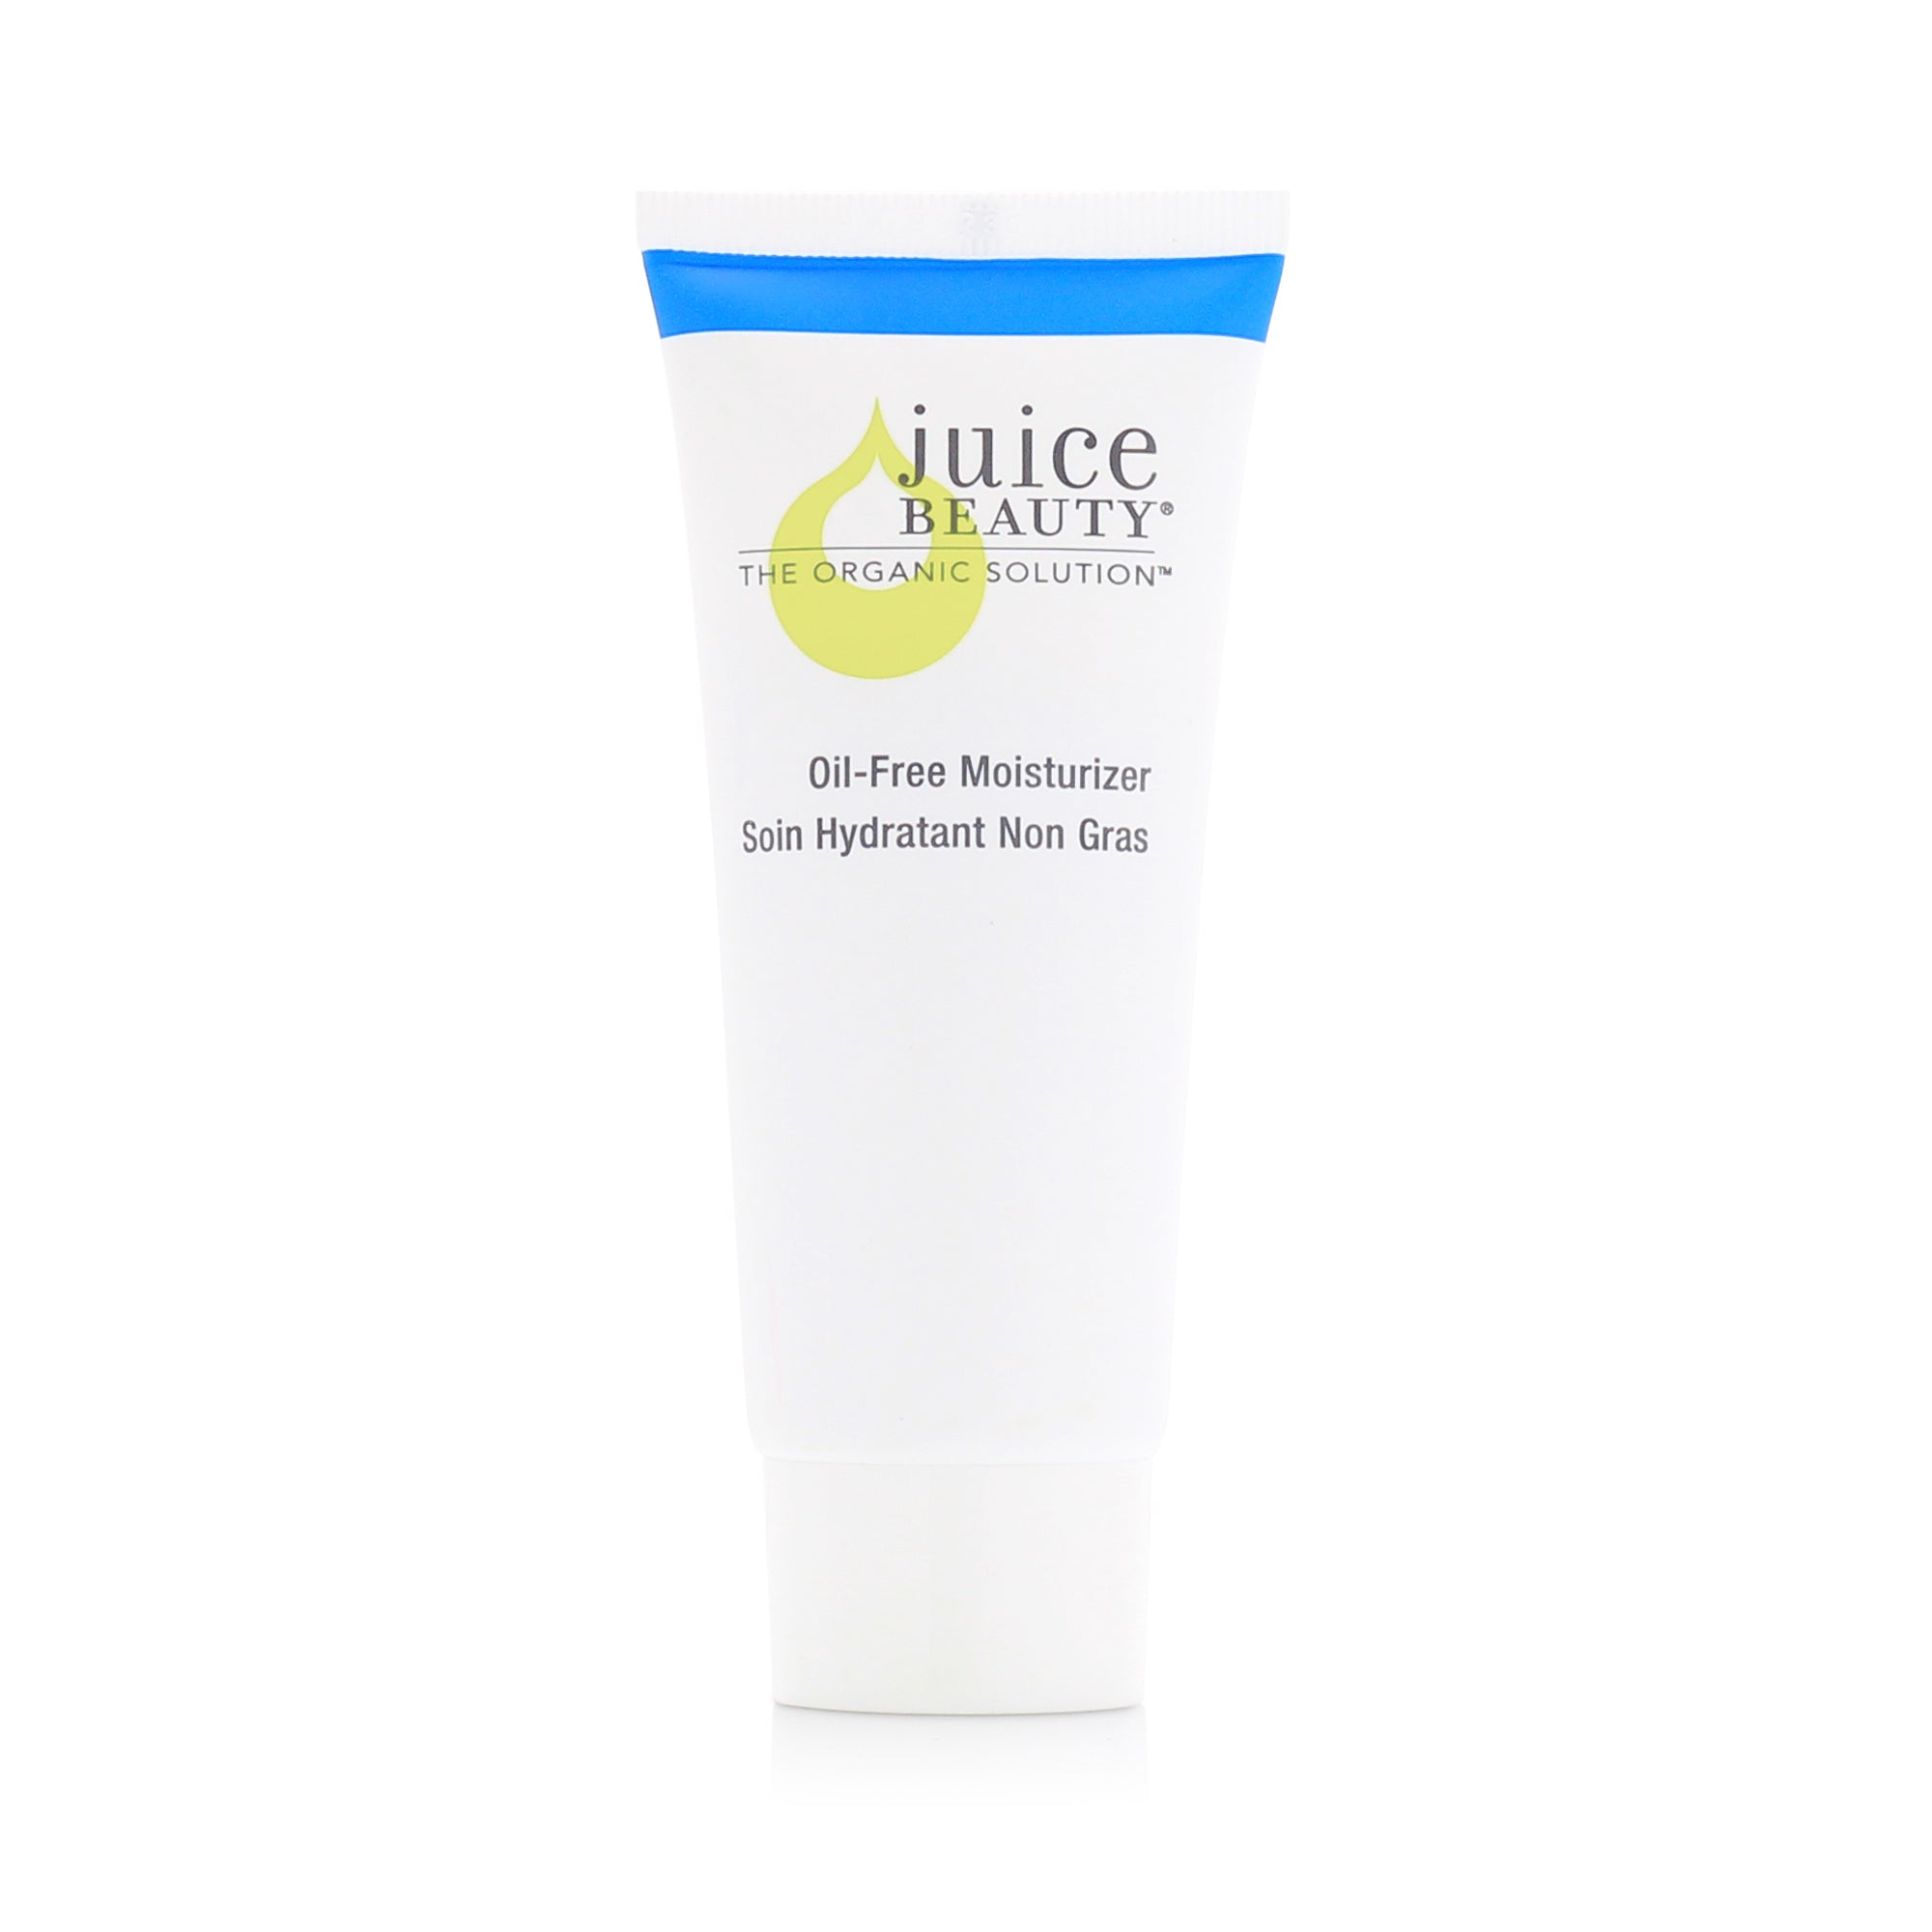 Juice Beauty GWP